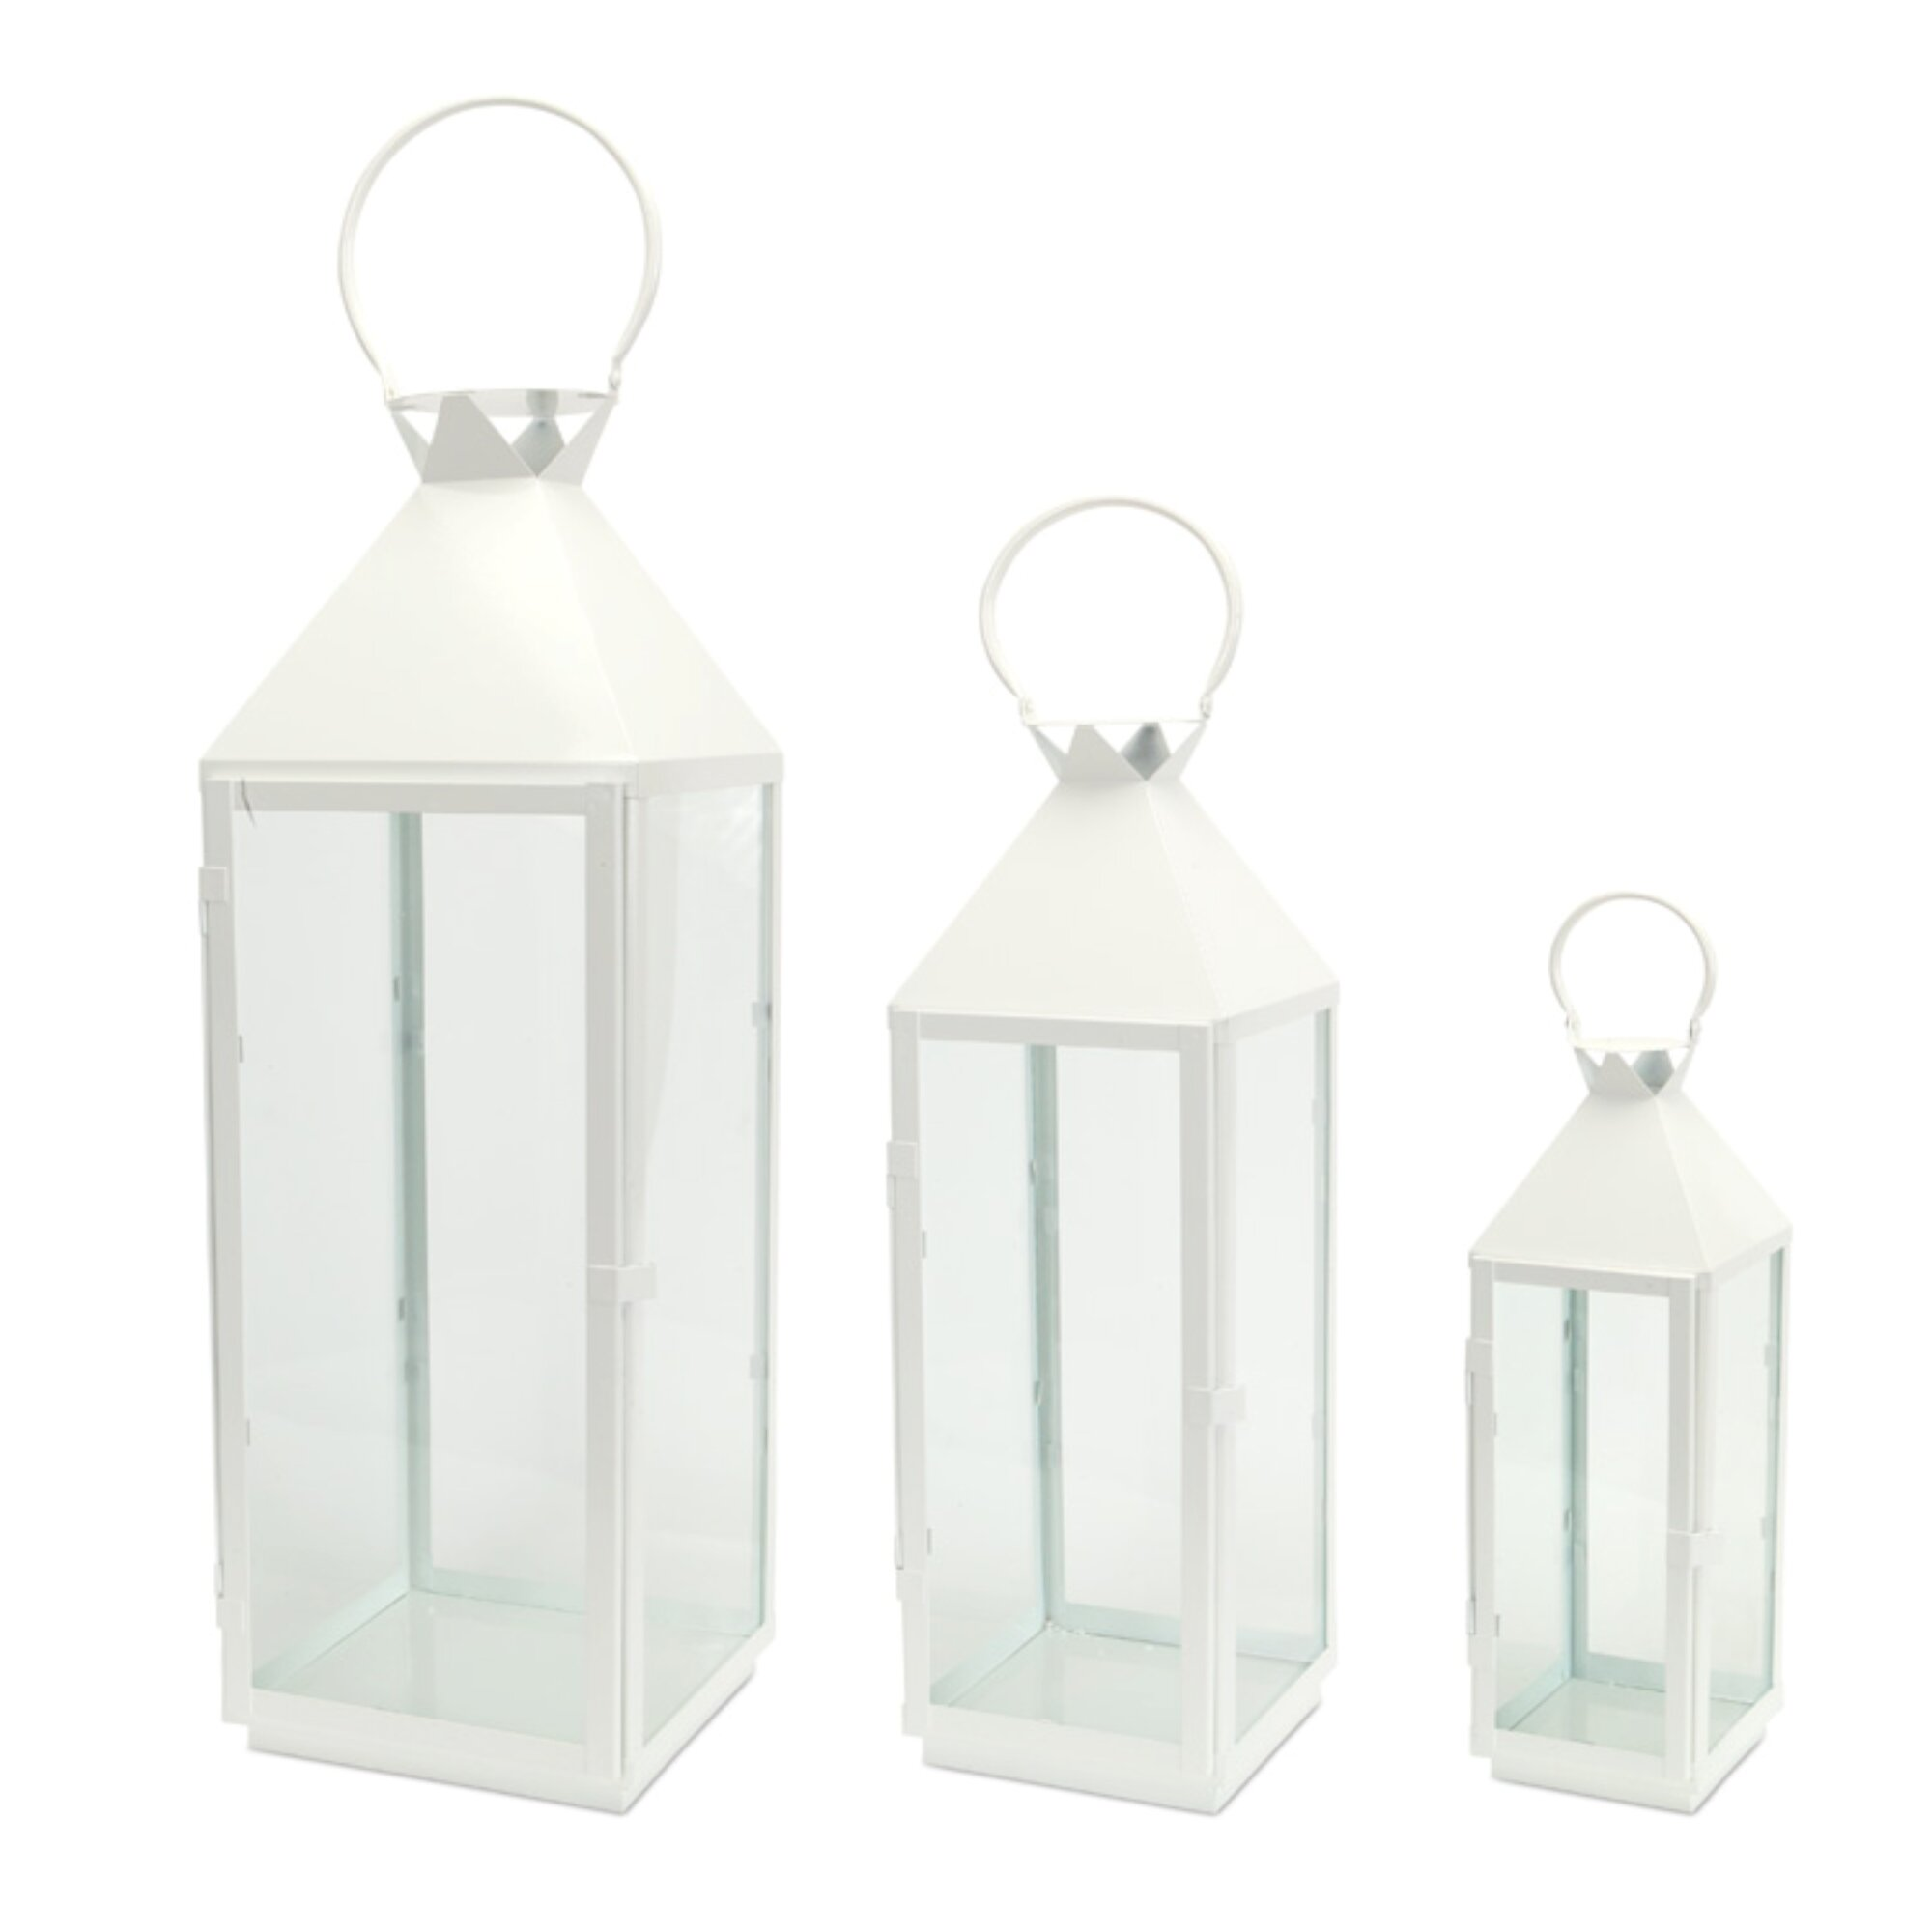 Longshore Tides 3 Piece Tall Metal Lantern Set Reviews Wayfair